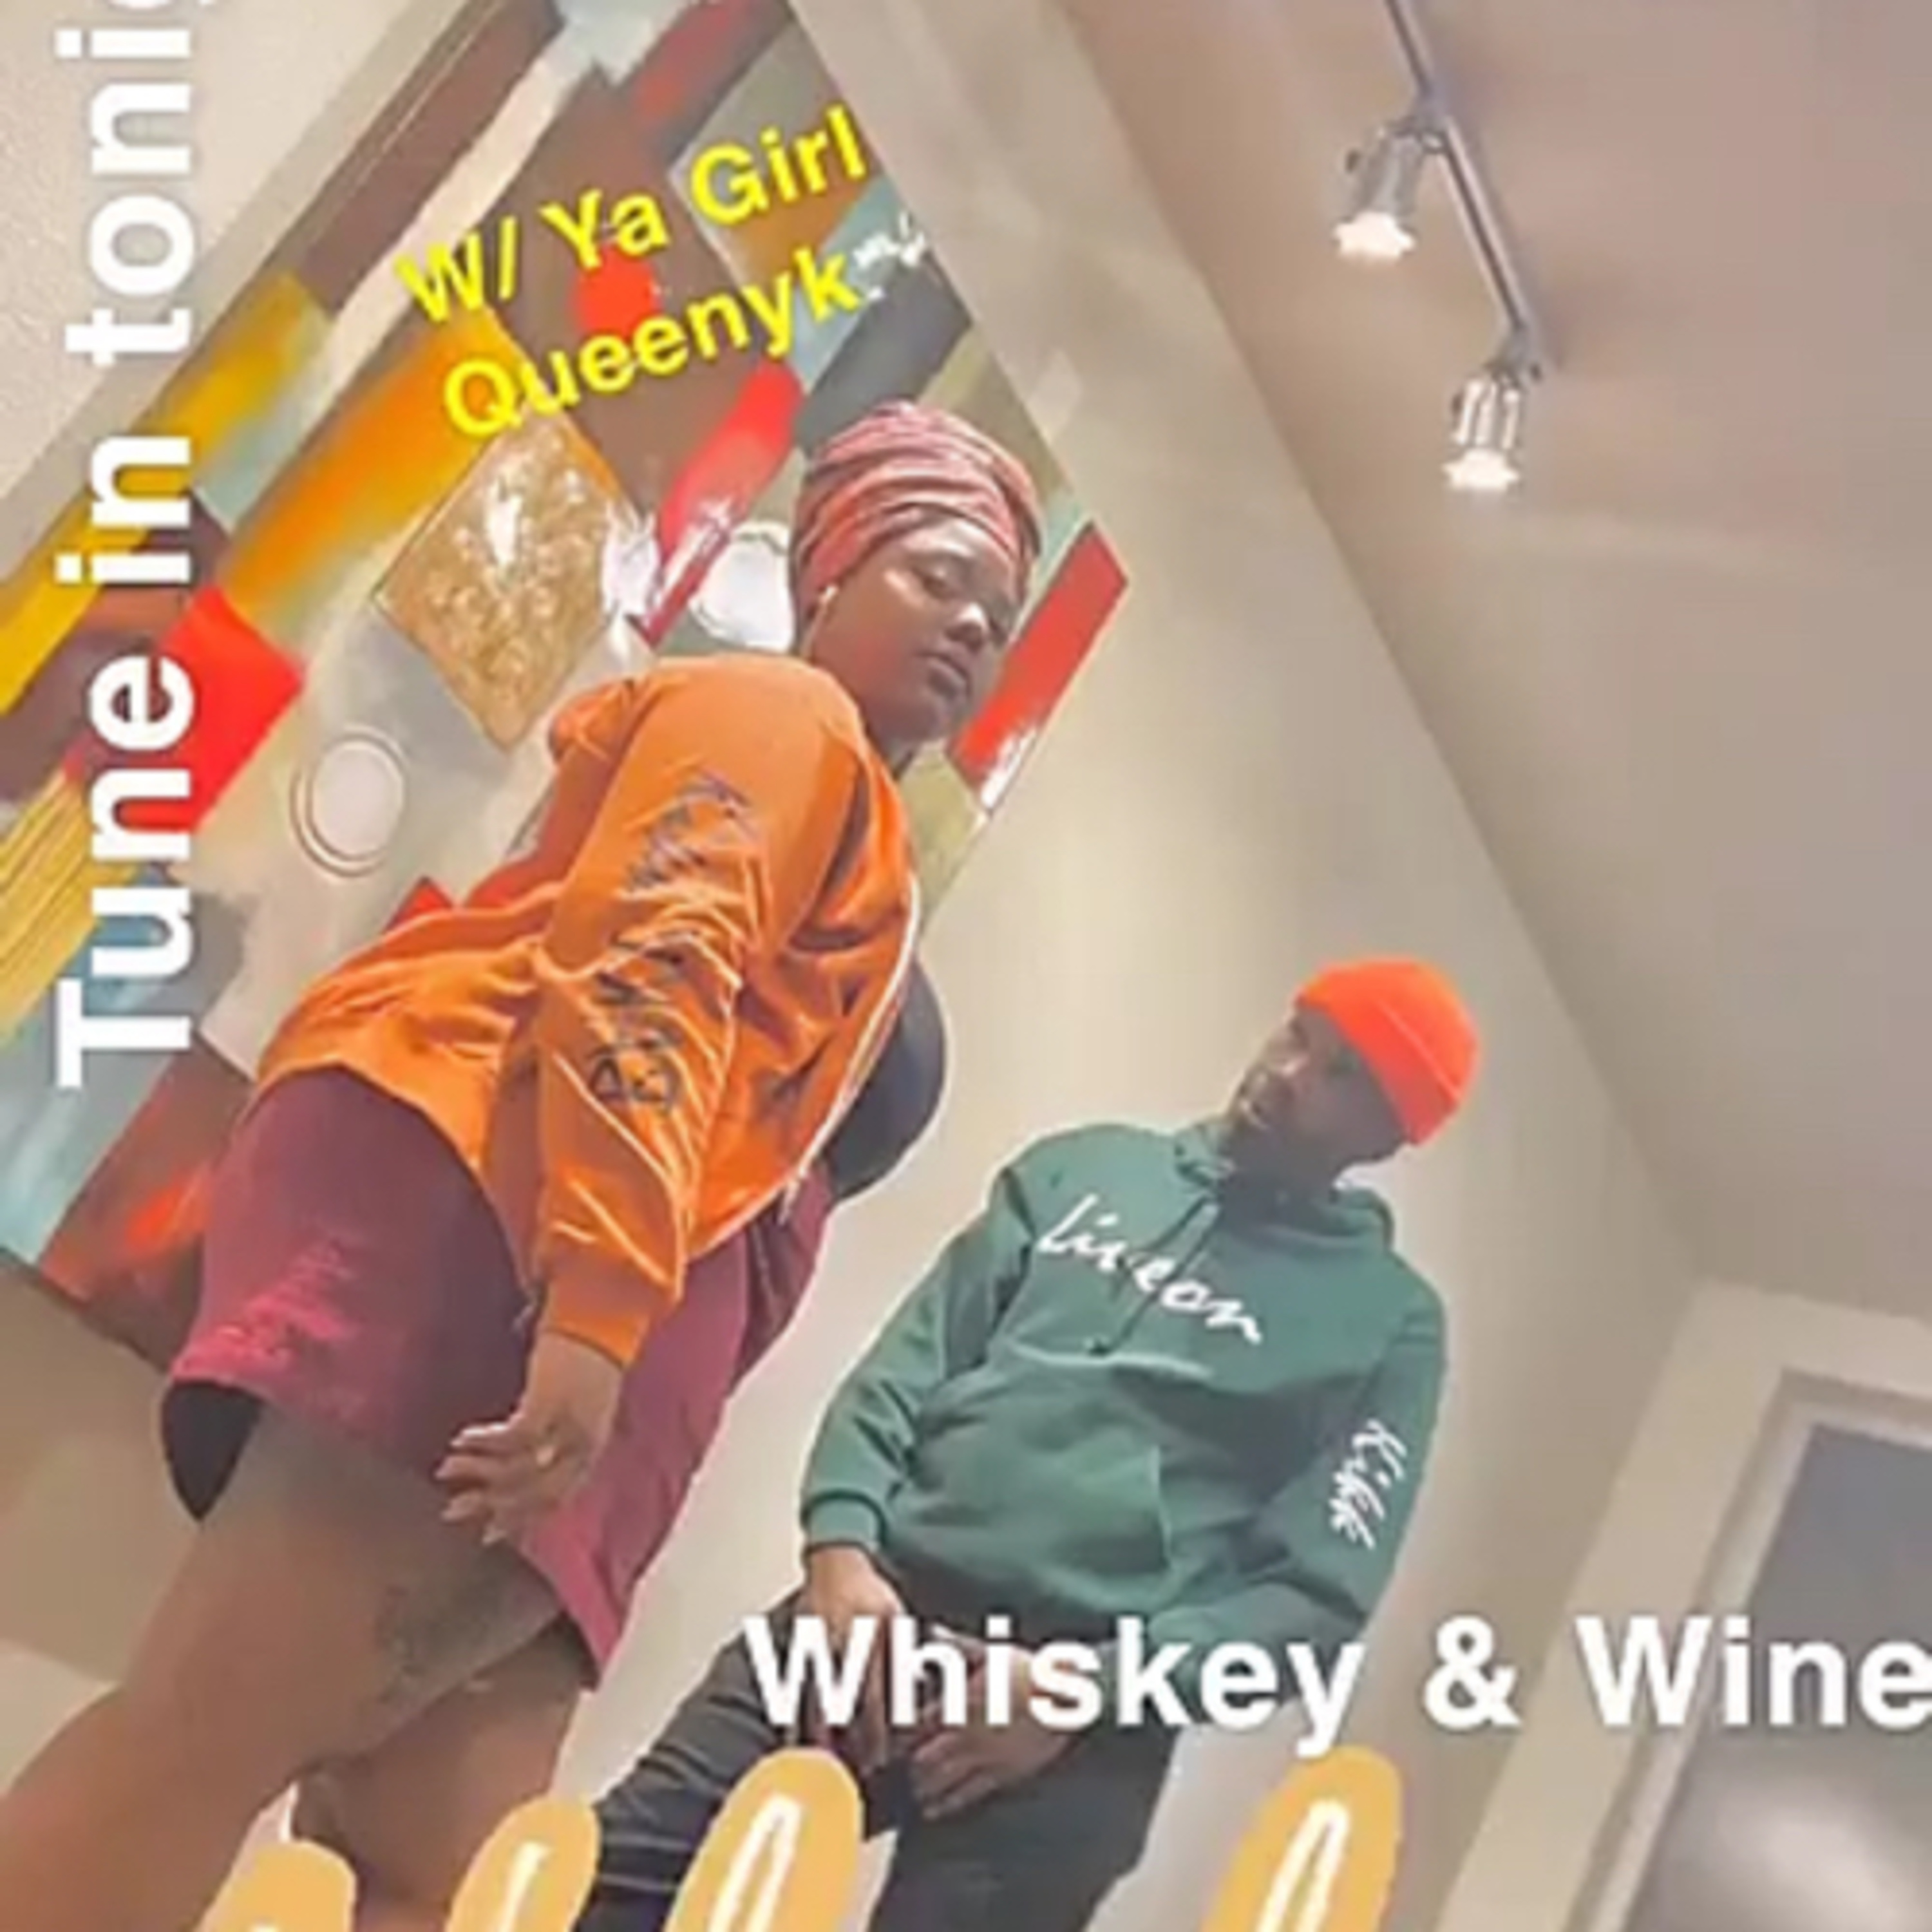 Womans Wine and Whiskey Wednesdays With Queeny_.K Ft. Nemo and DAP Coping during a Pandemic